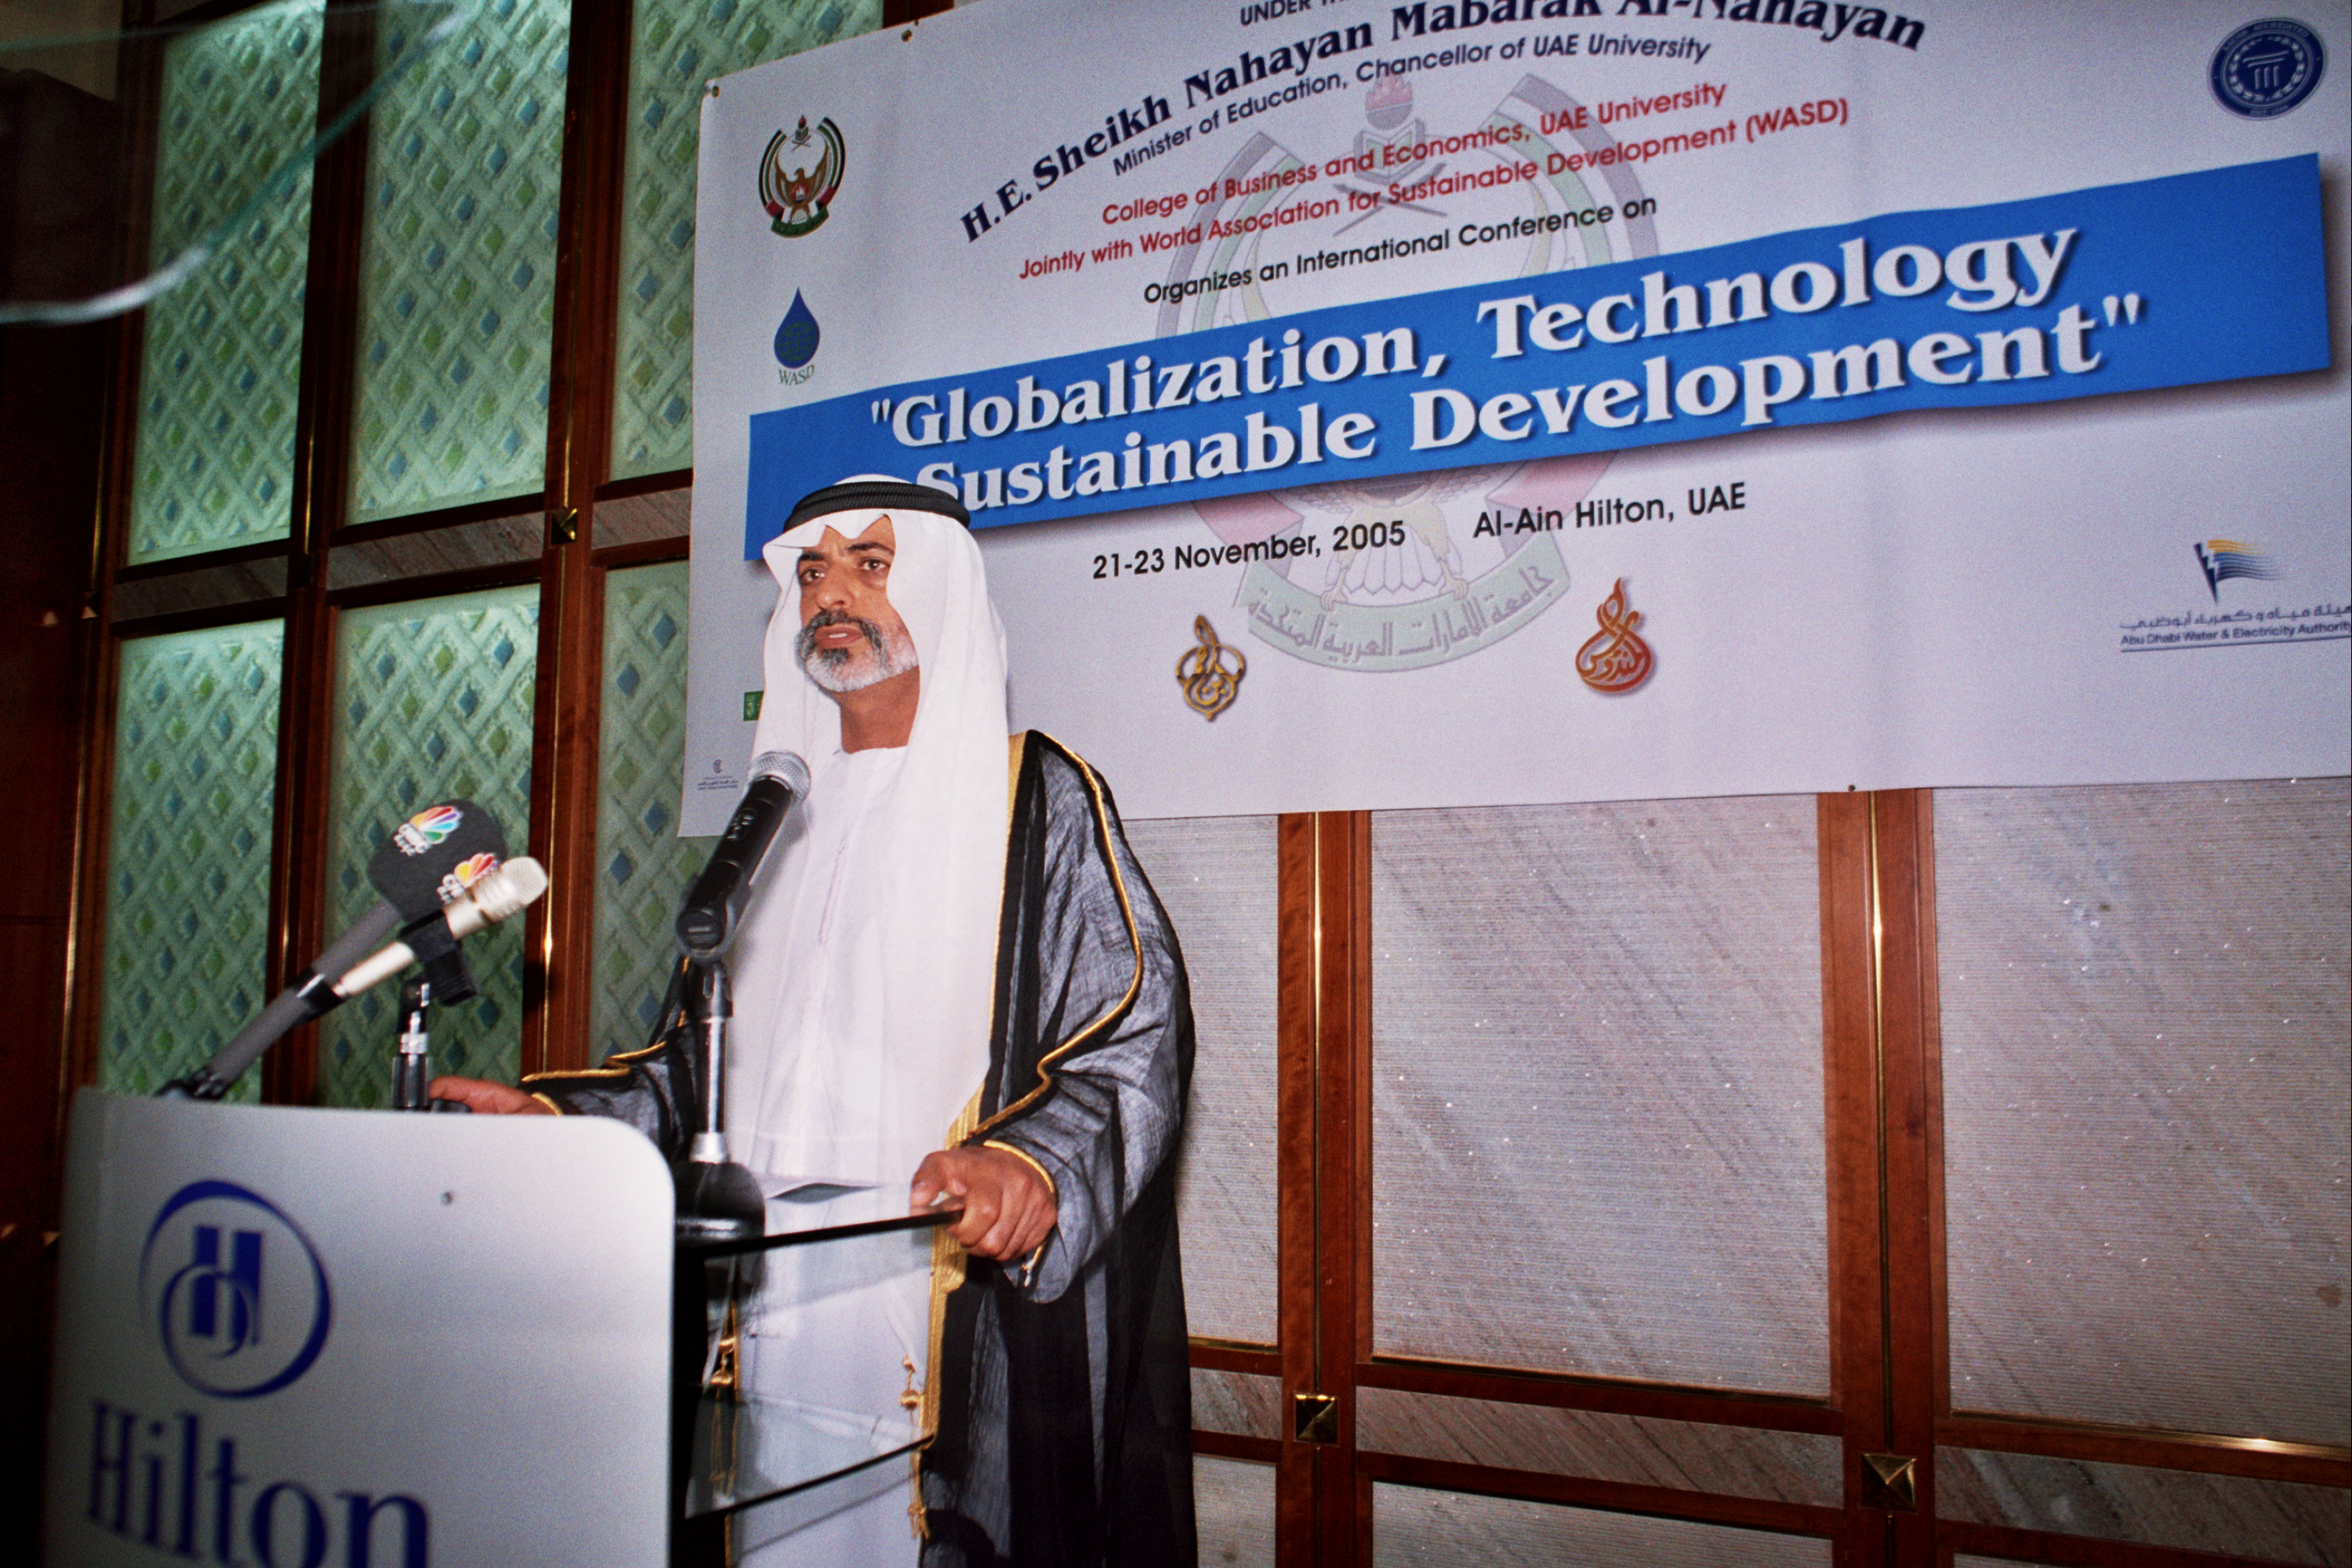 3rd Sustainability Conference, Al Ain, UAE 2005<div style='clear:both;width:100%;height:0px;'></div><span class='cat'>Sustainability Conferences, MENA</span>